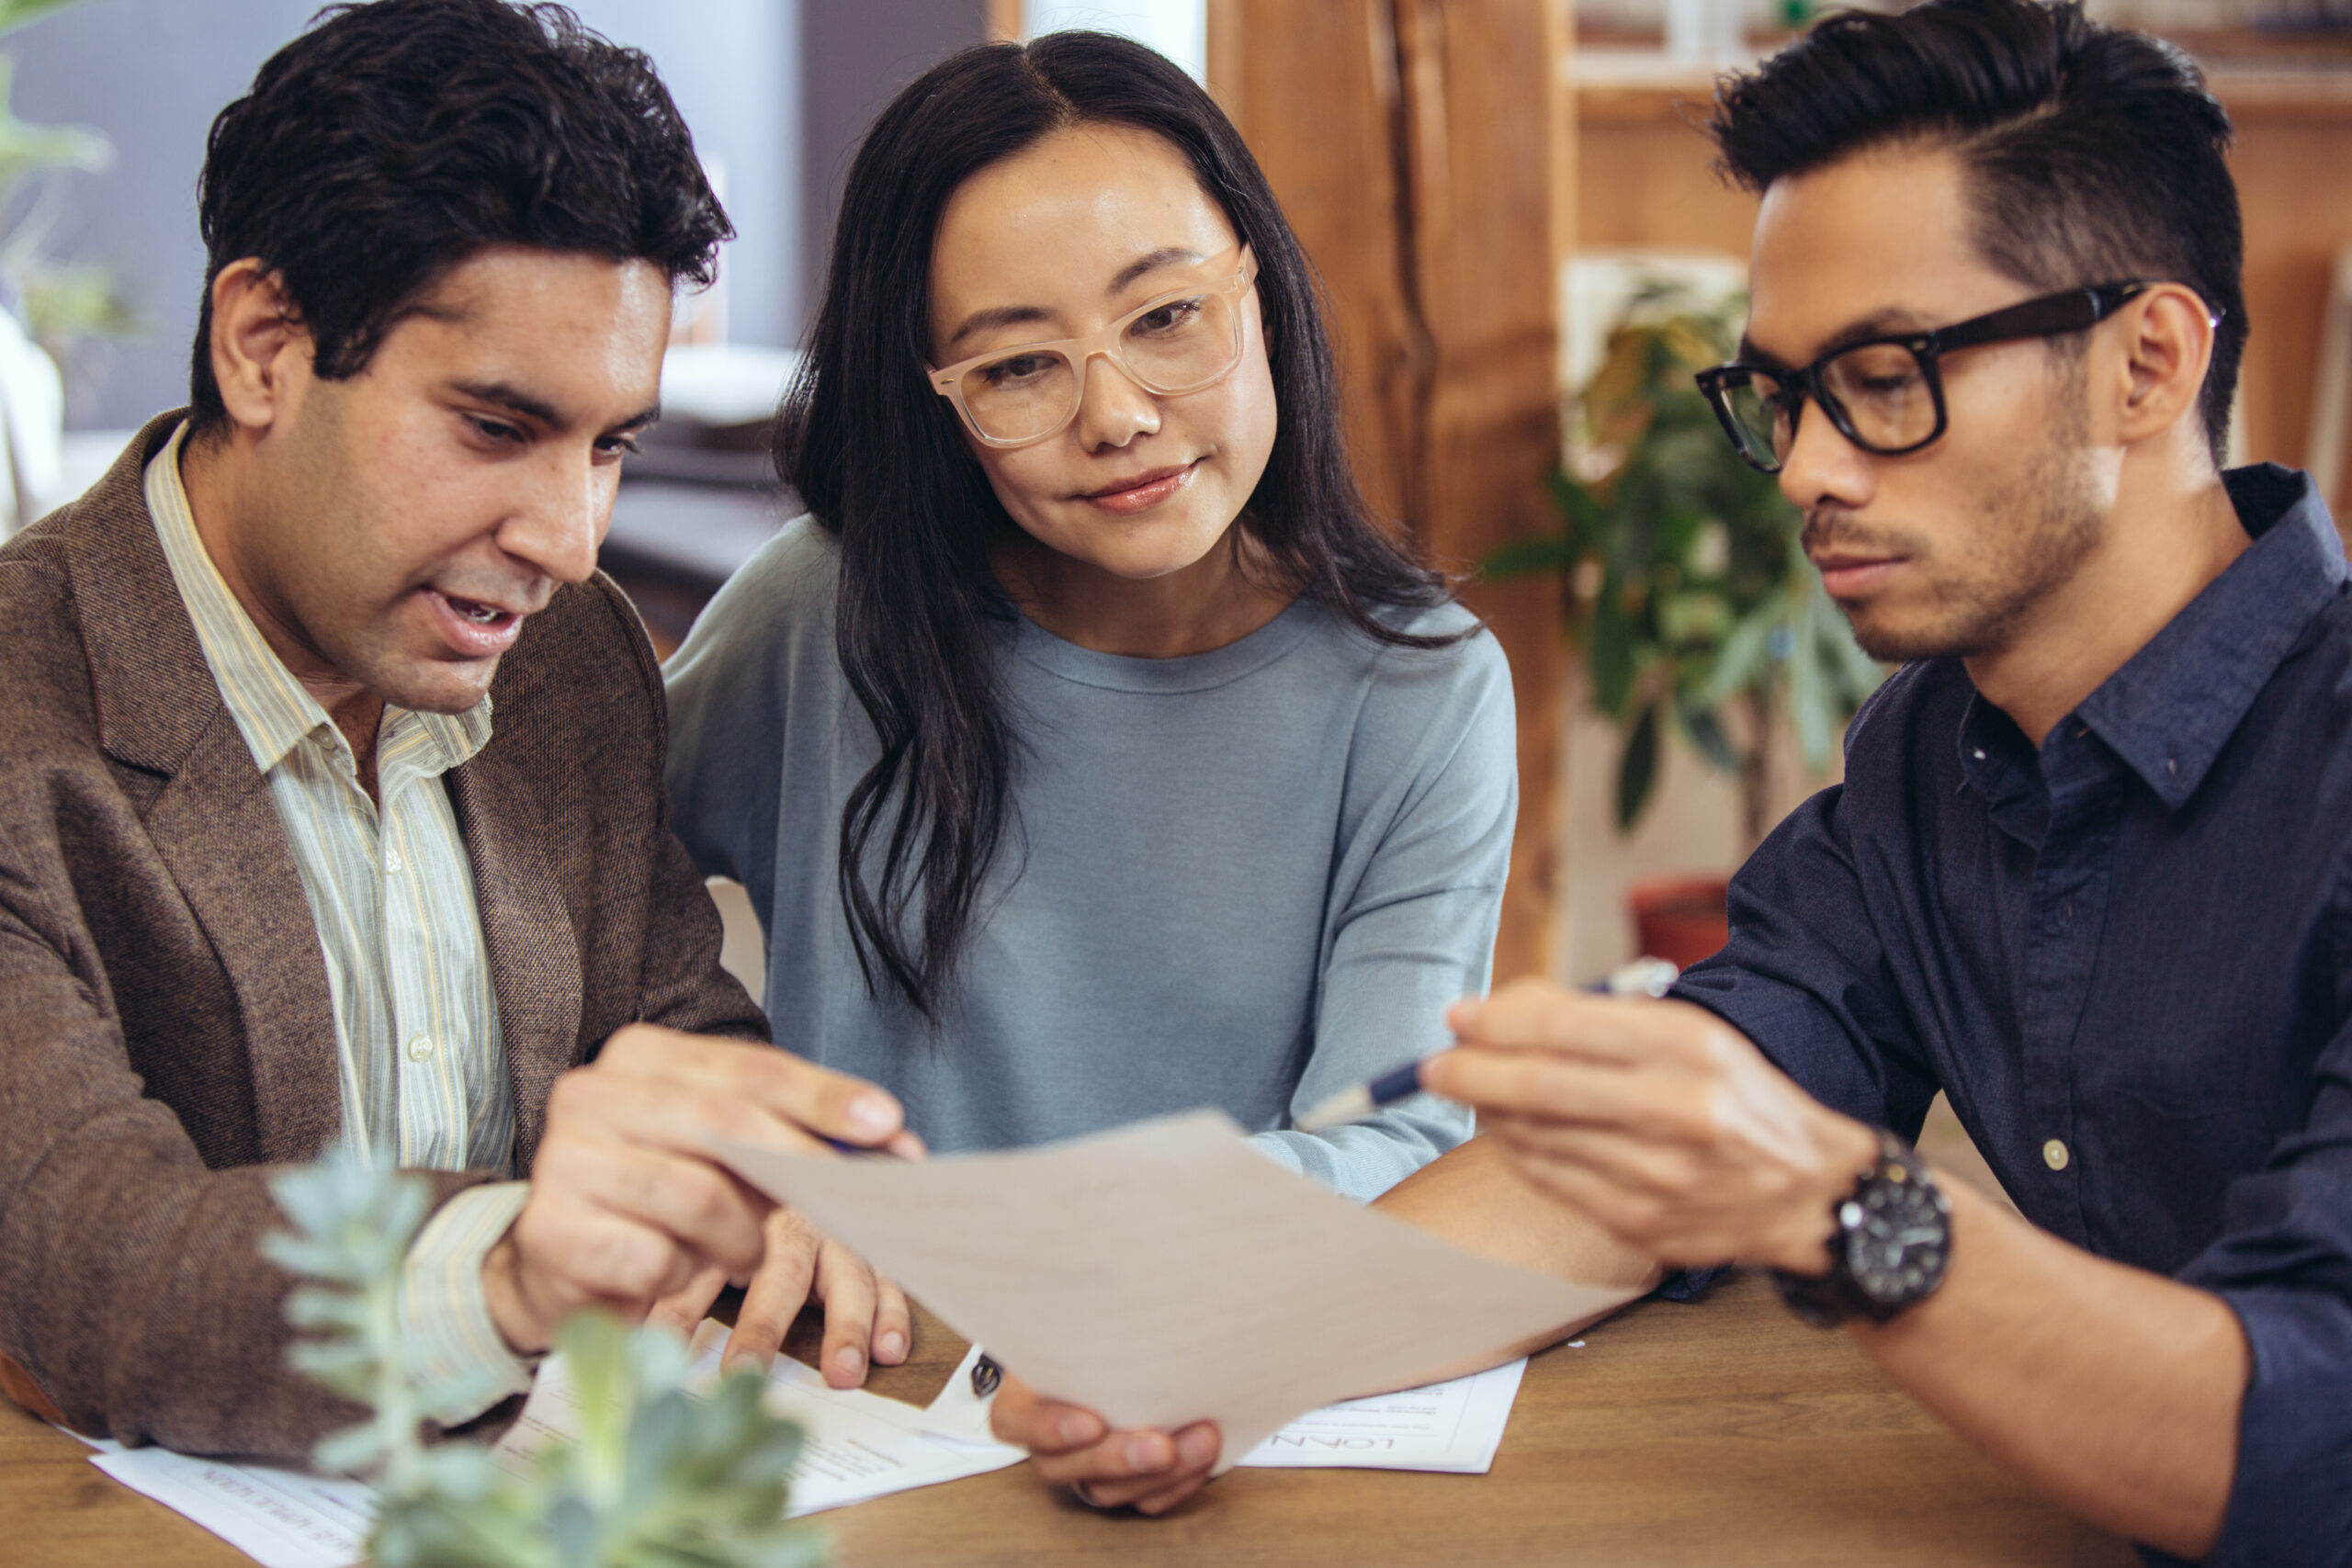 a couple receiving mortgage preapproval advice from an advisor